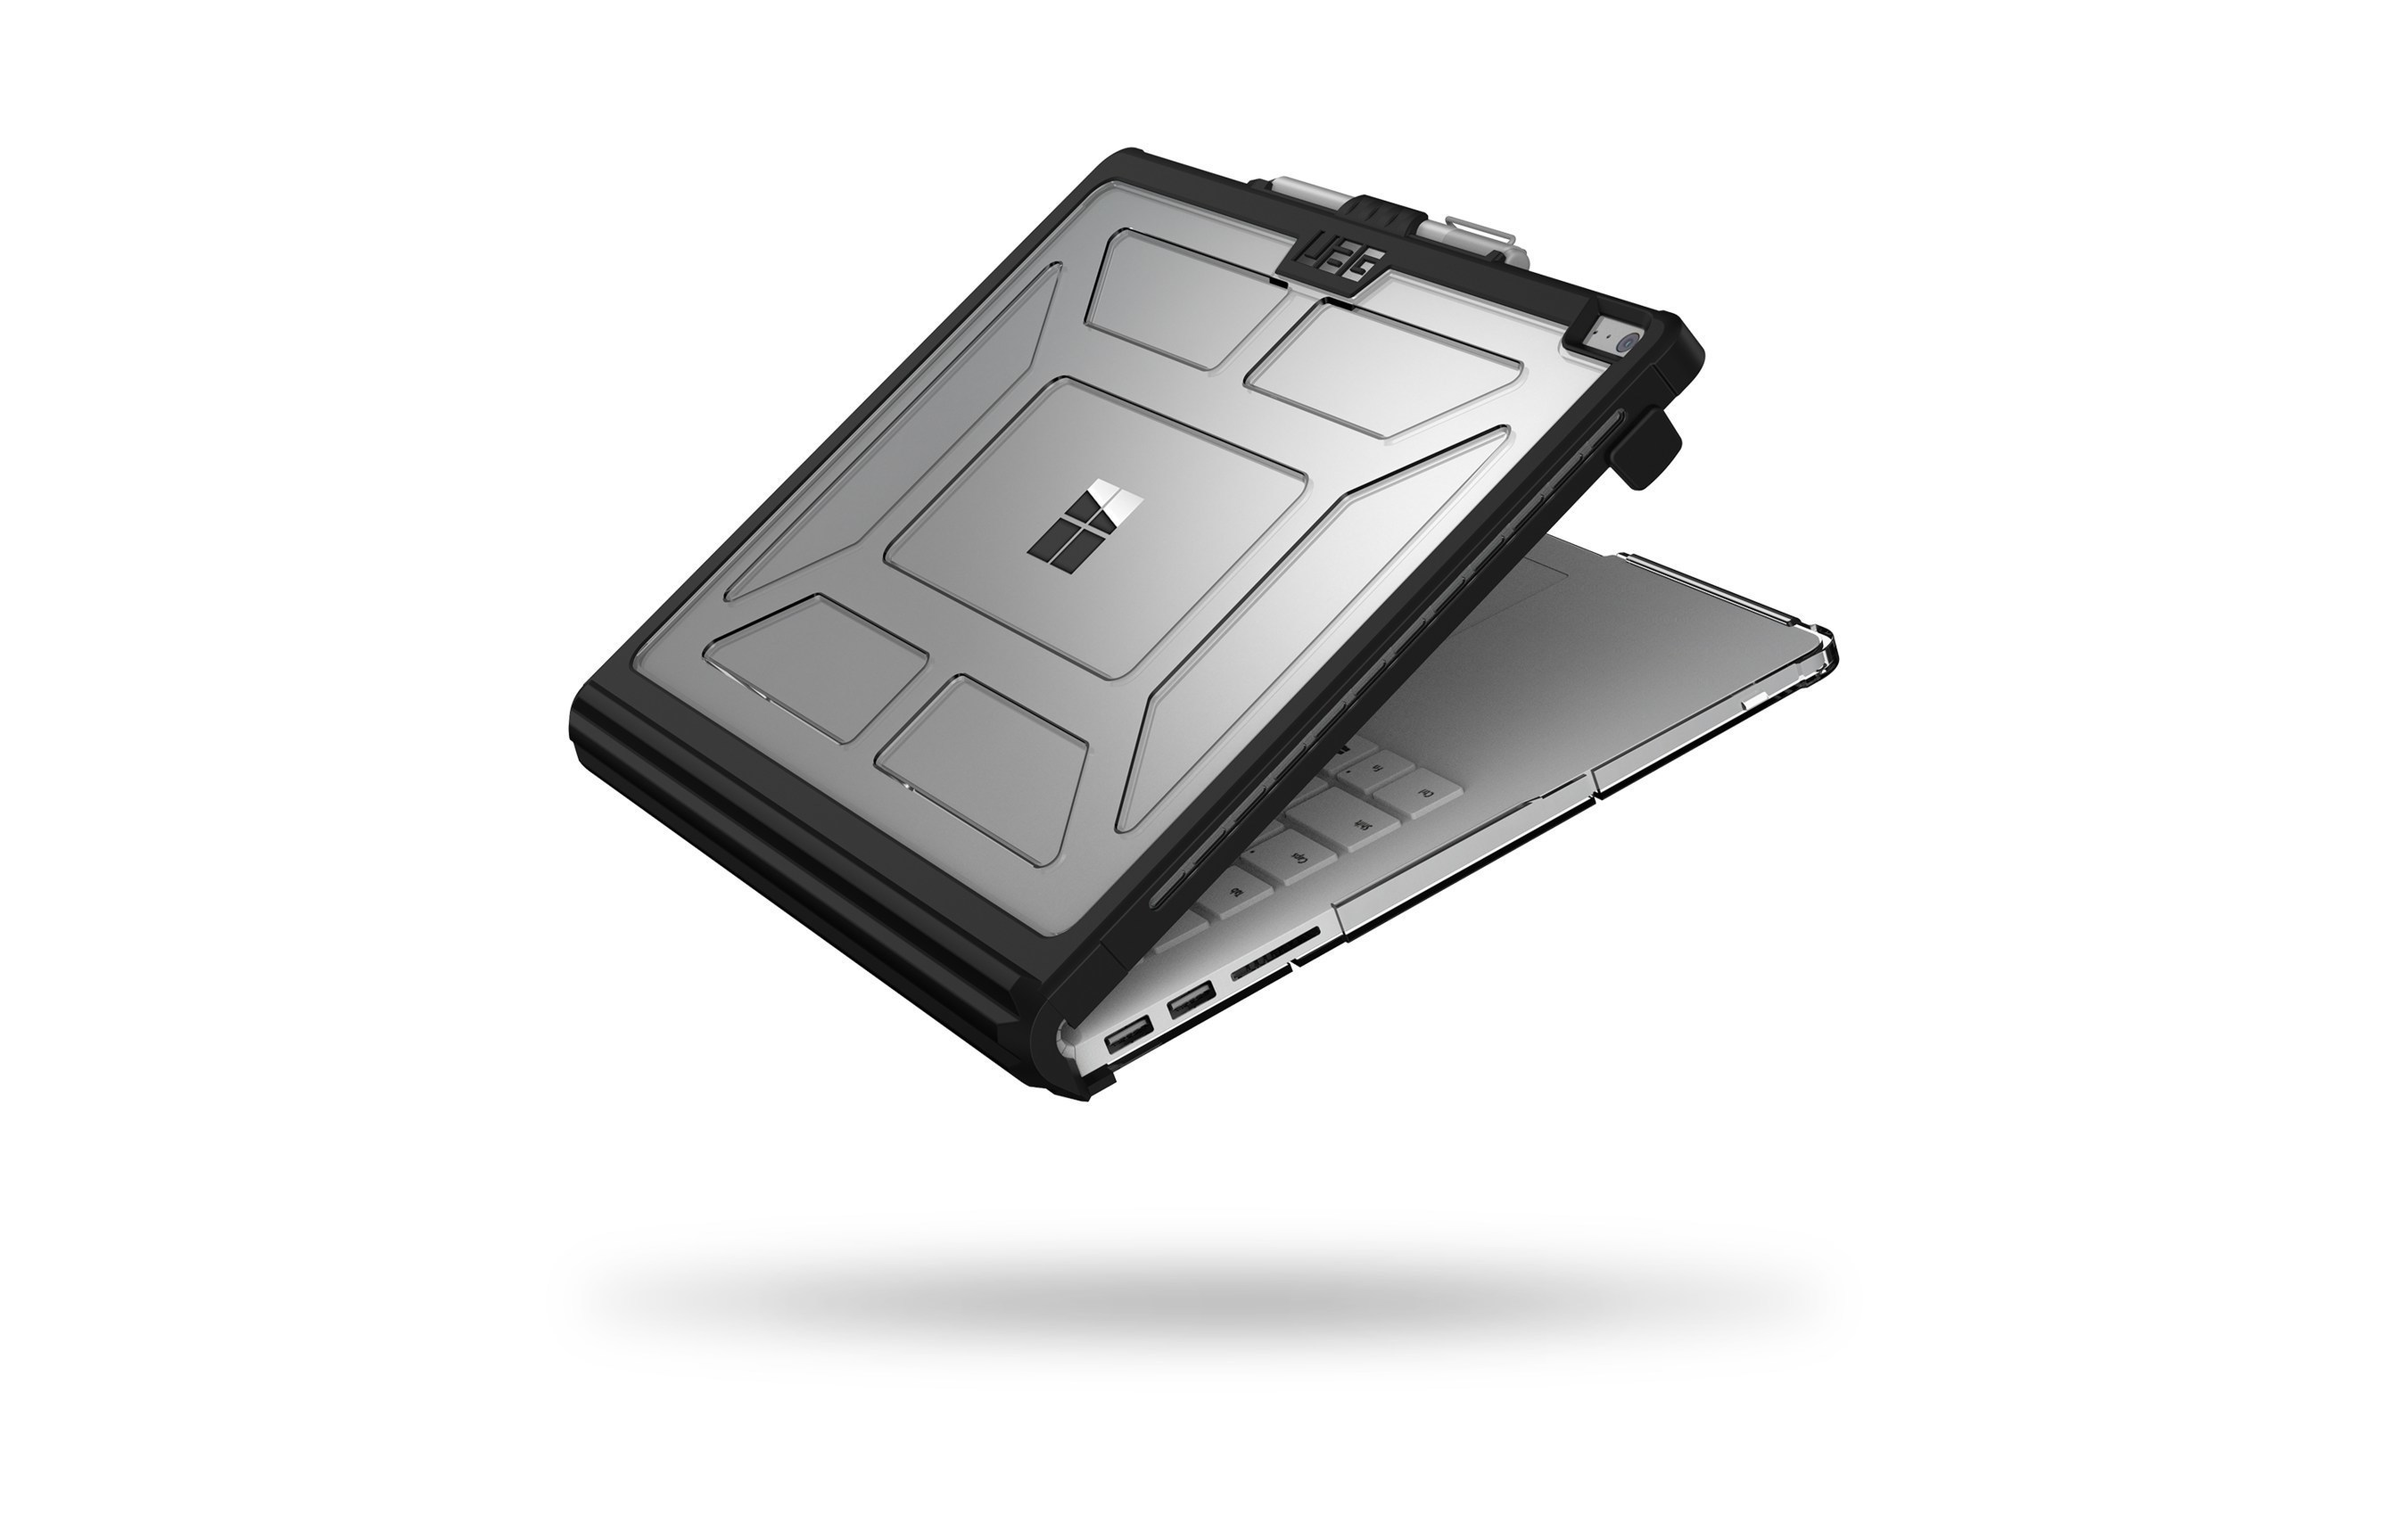 UAG Introduces Rugged Mil-Spec Case for Microsoft Surface BookDrop-Tested Protection for the Multi-use Surface Book